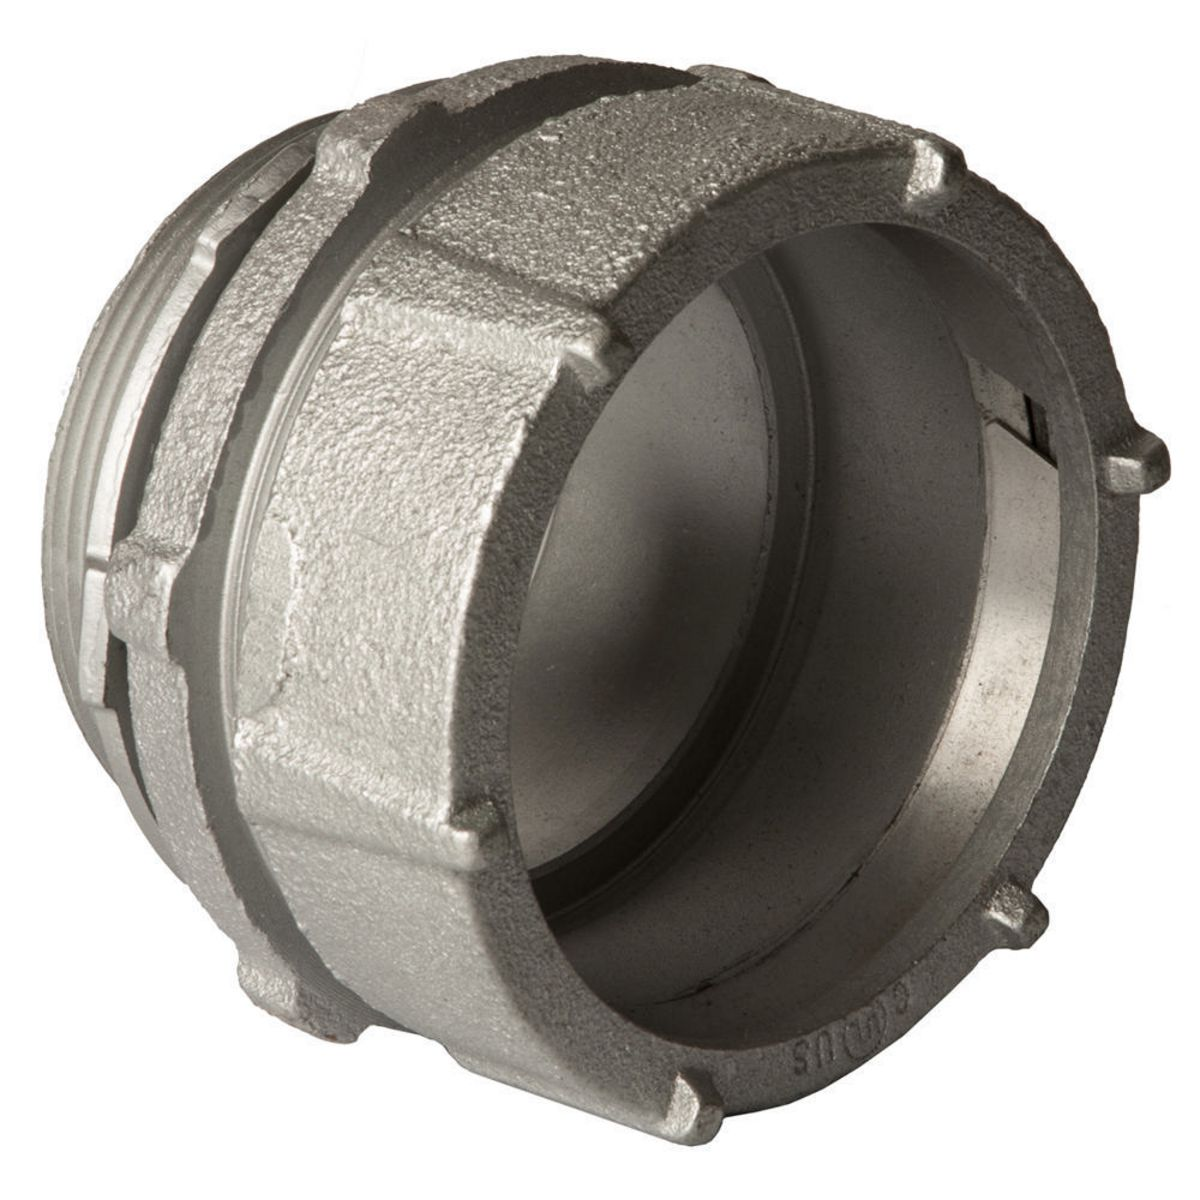 Hubbell-Raco 1816 Compression Connector